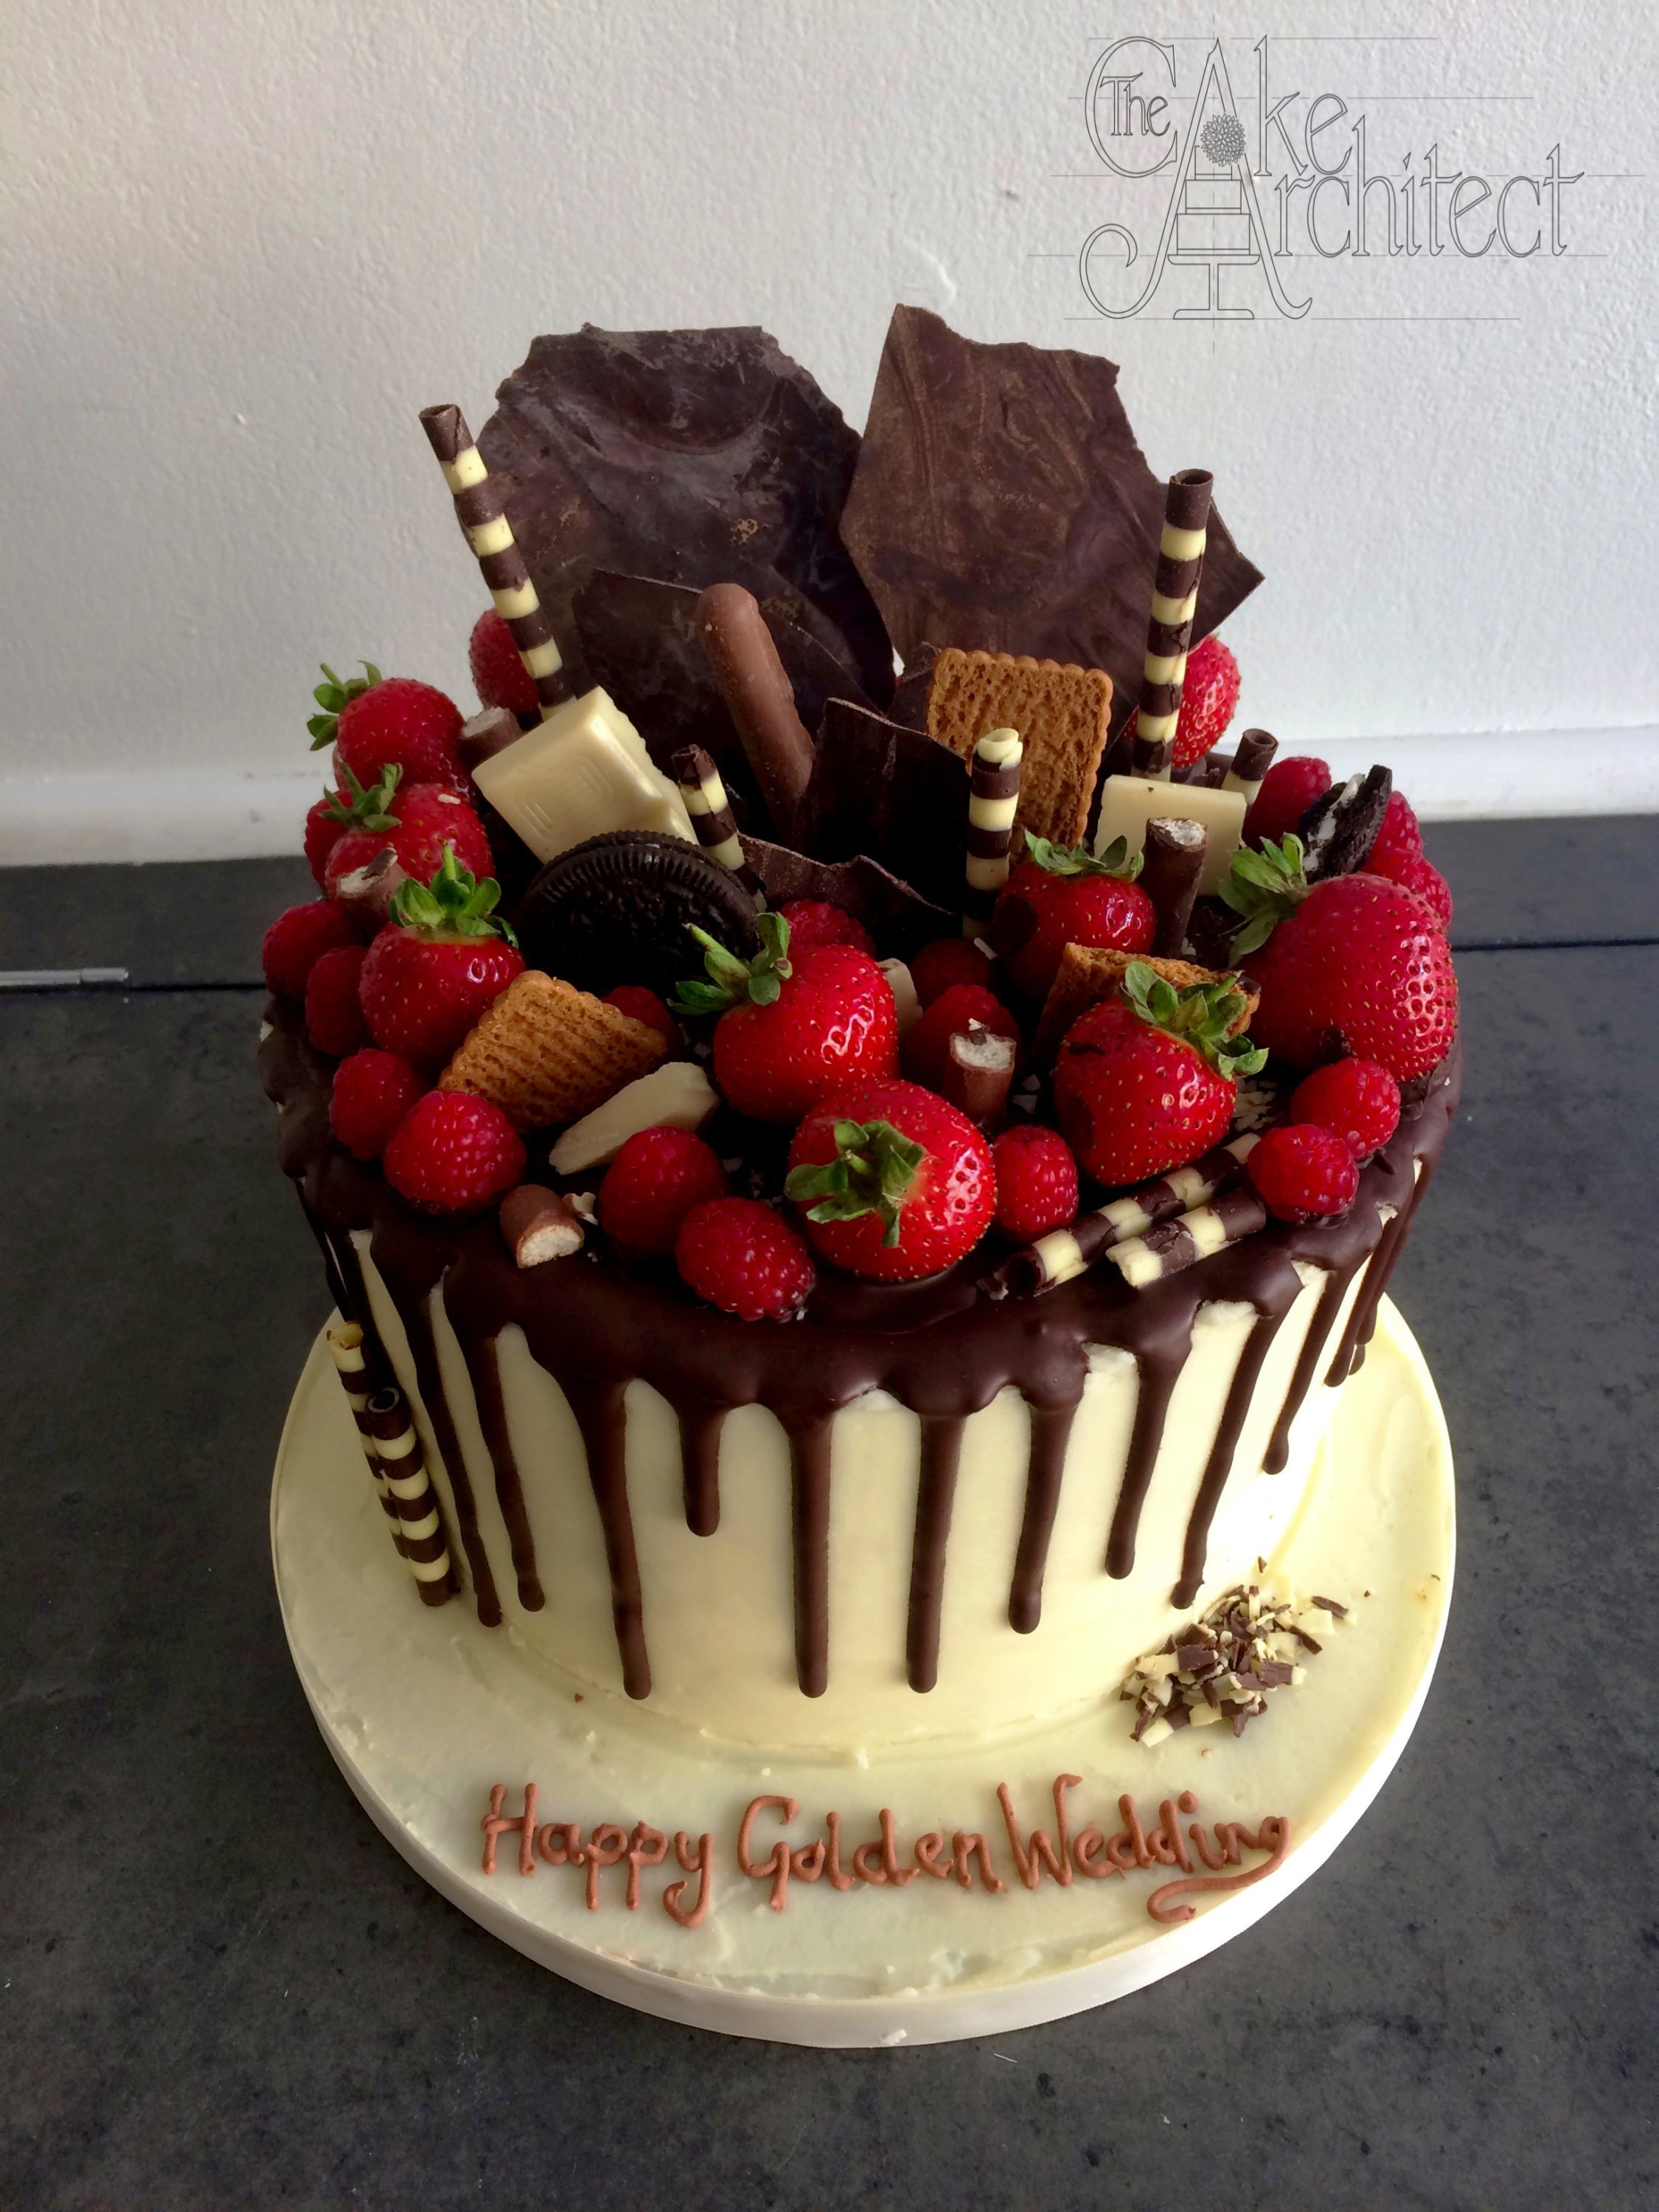 Celebration Cake Birthday Chocolate Drip with Chocolate and Fresh Fruit Topping